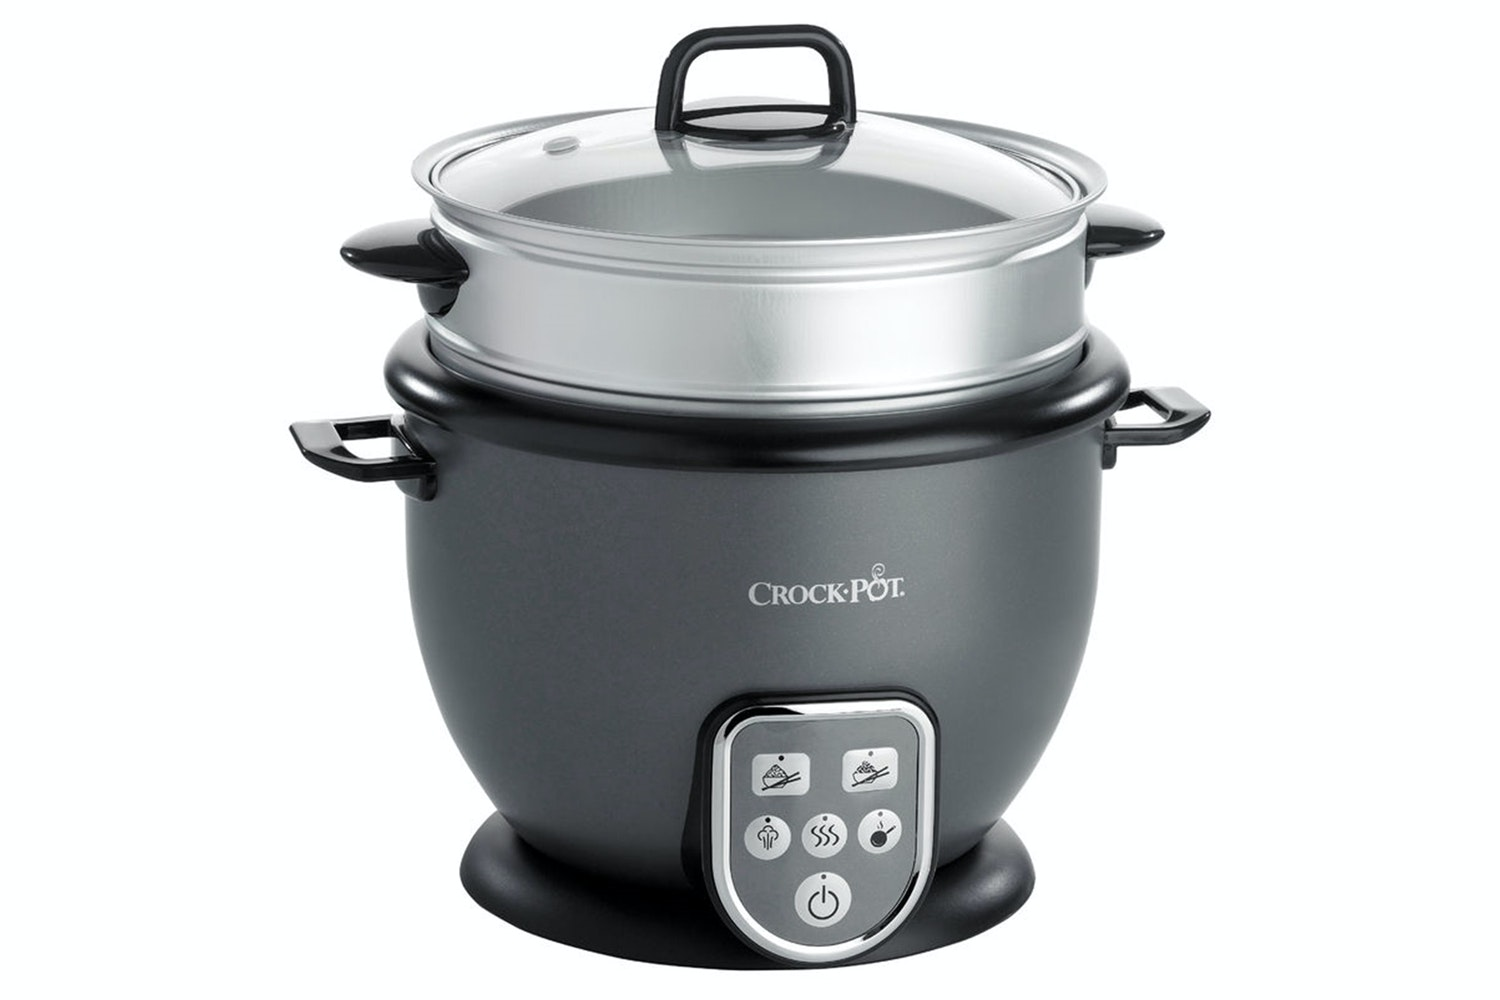 Crock-Pot 1.8L Digital Rice Cooker | CRC029